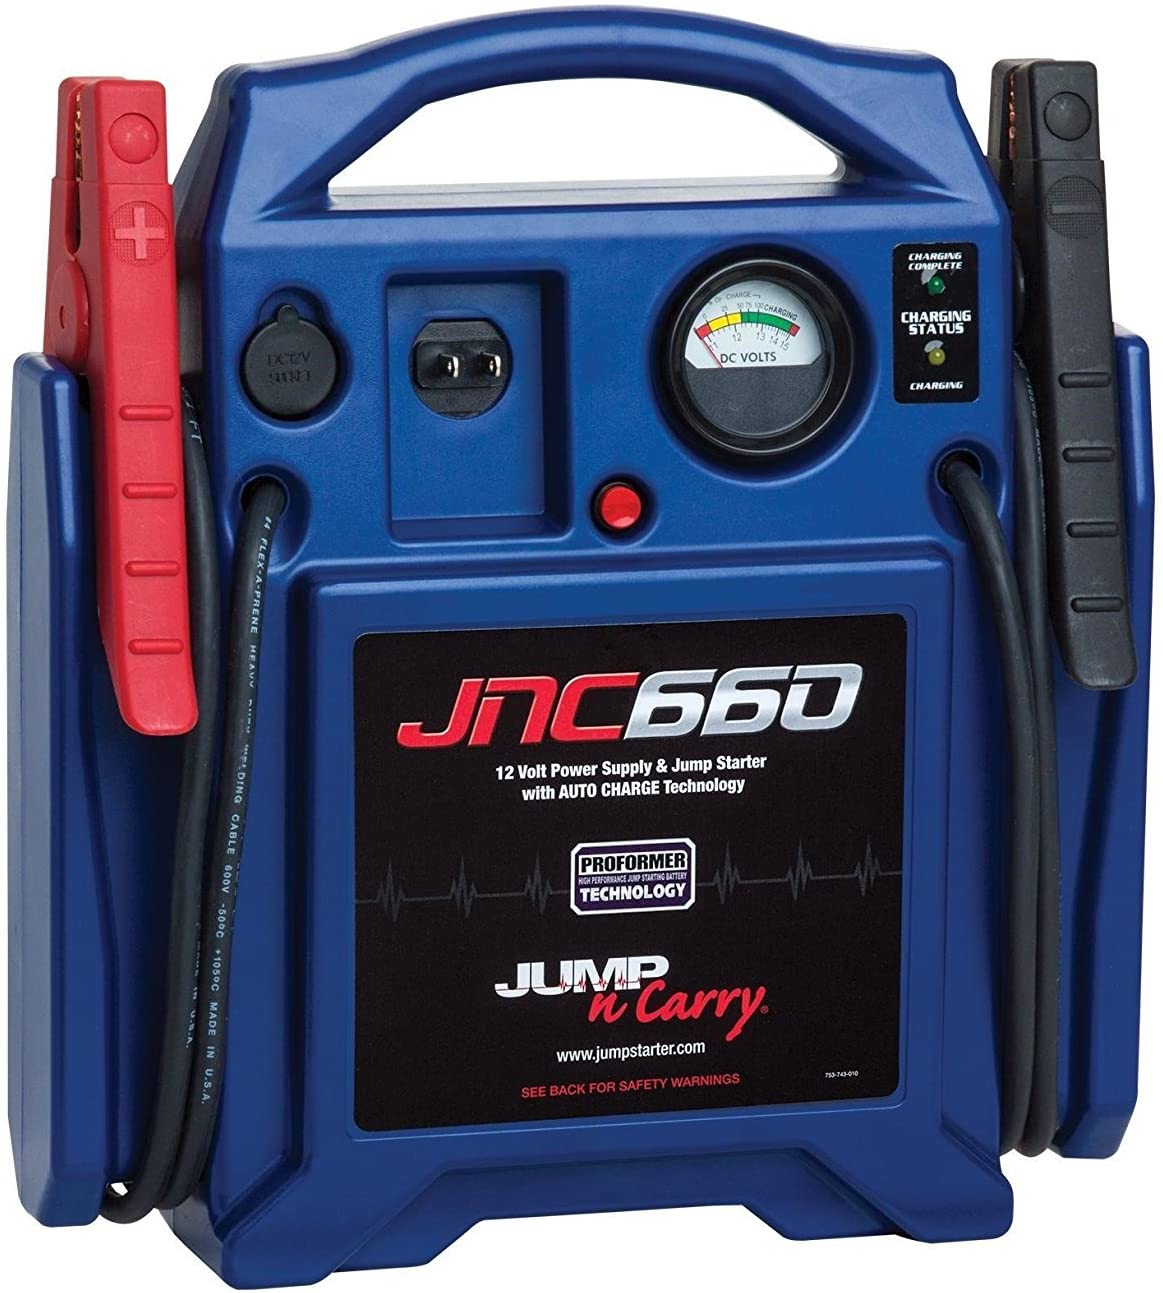 Best Car Battery Charger Clore Automotive Jump-N-Carry JNC660 1700 Peak Amp 12 Volt Jump Starter